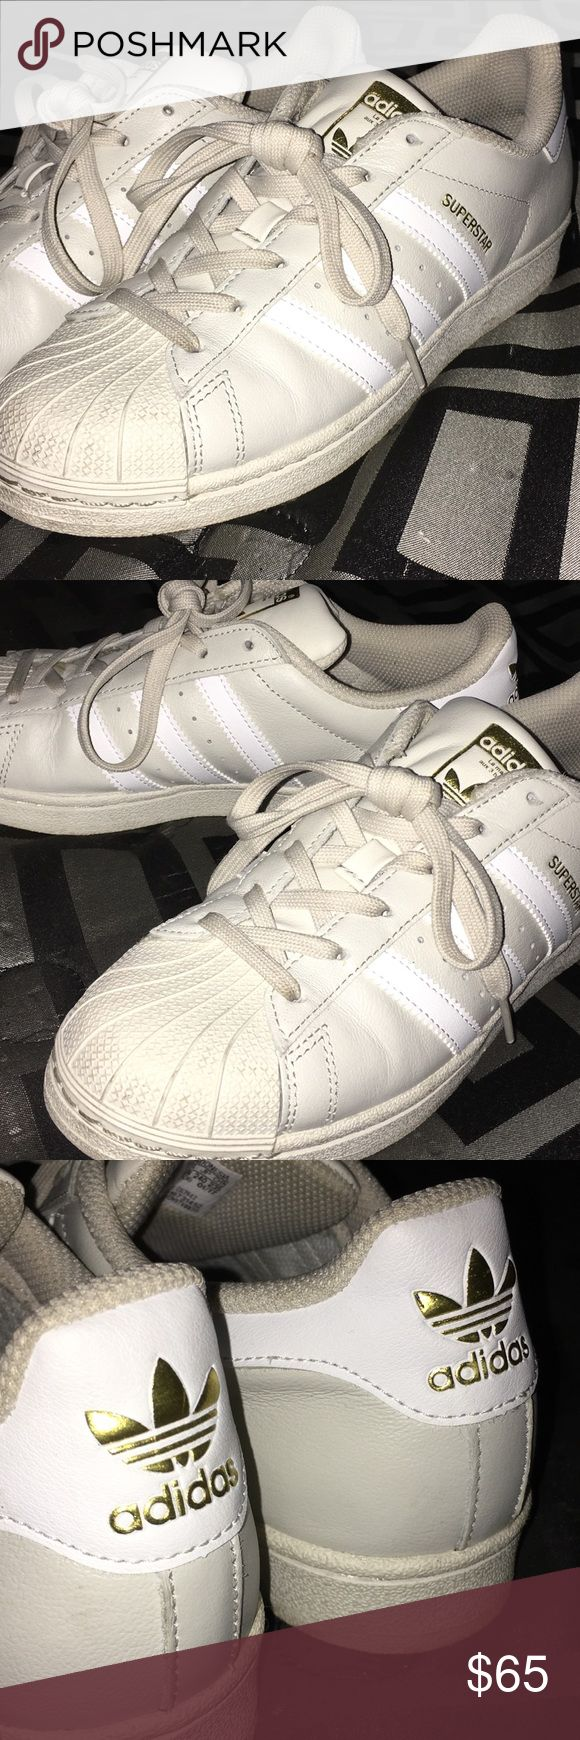 adidas superstar rose gold tip manicur adidas shoes for boys size 6